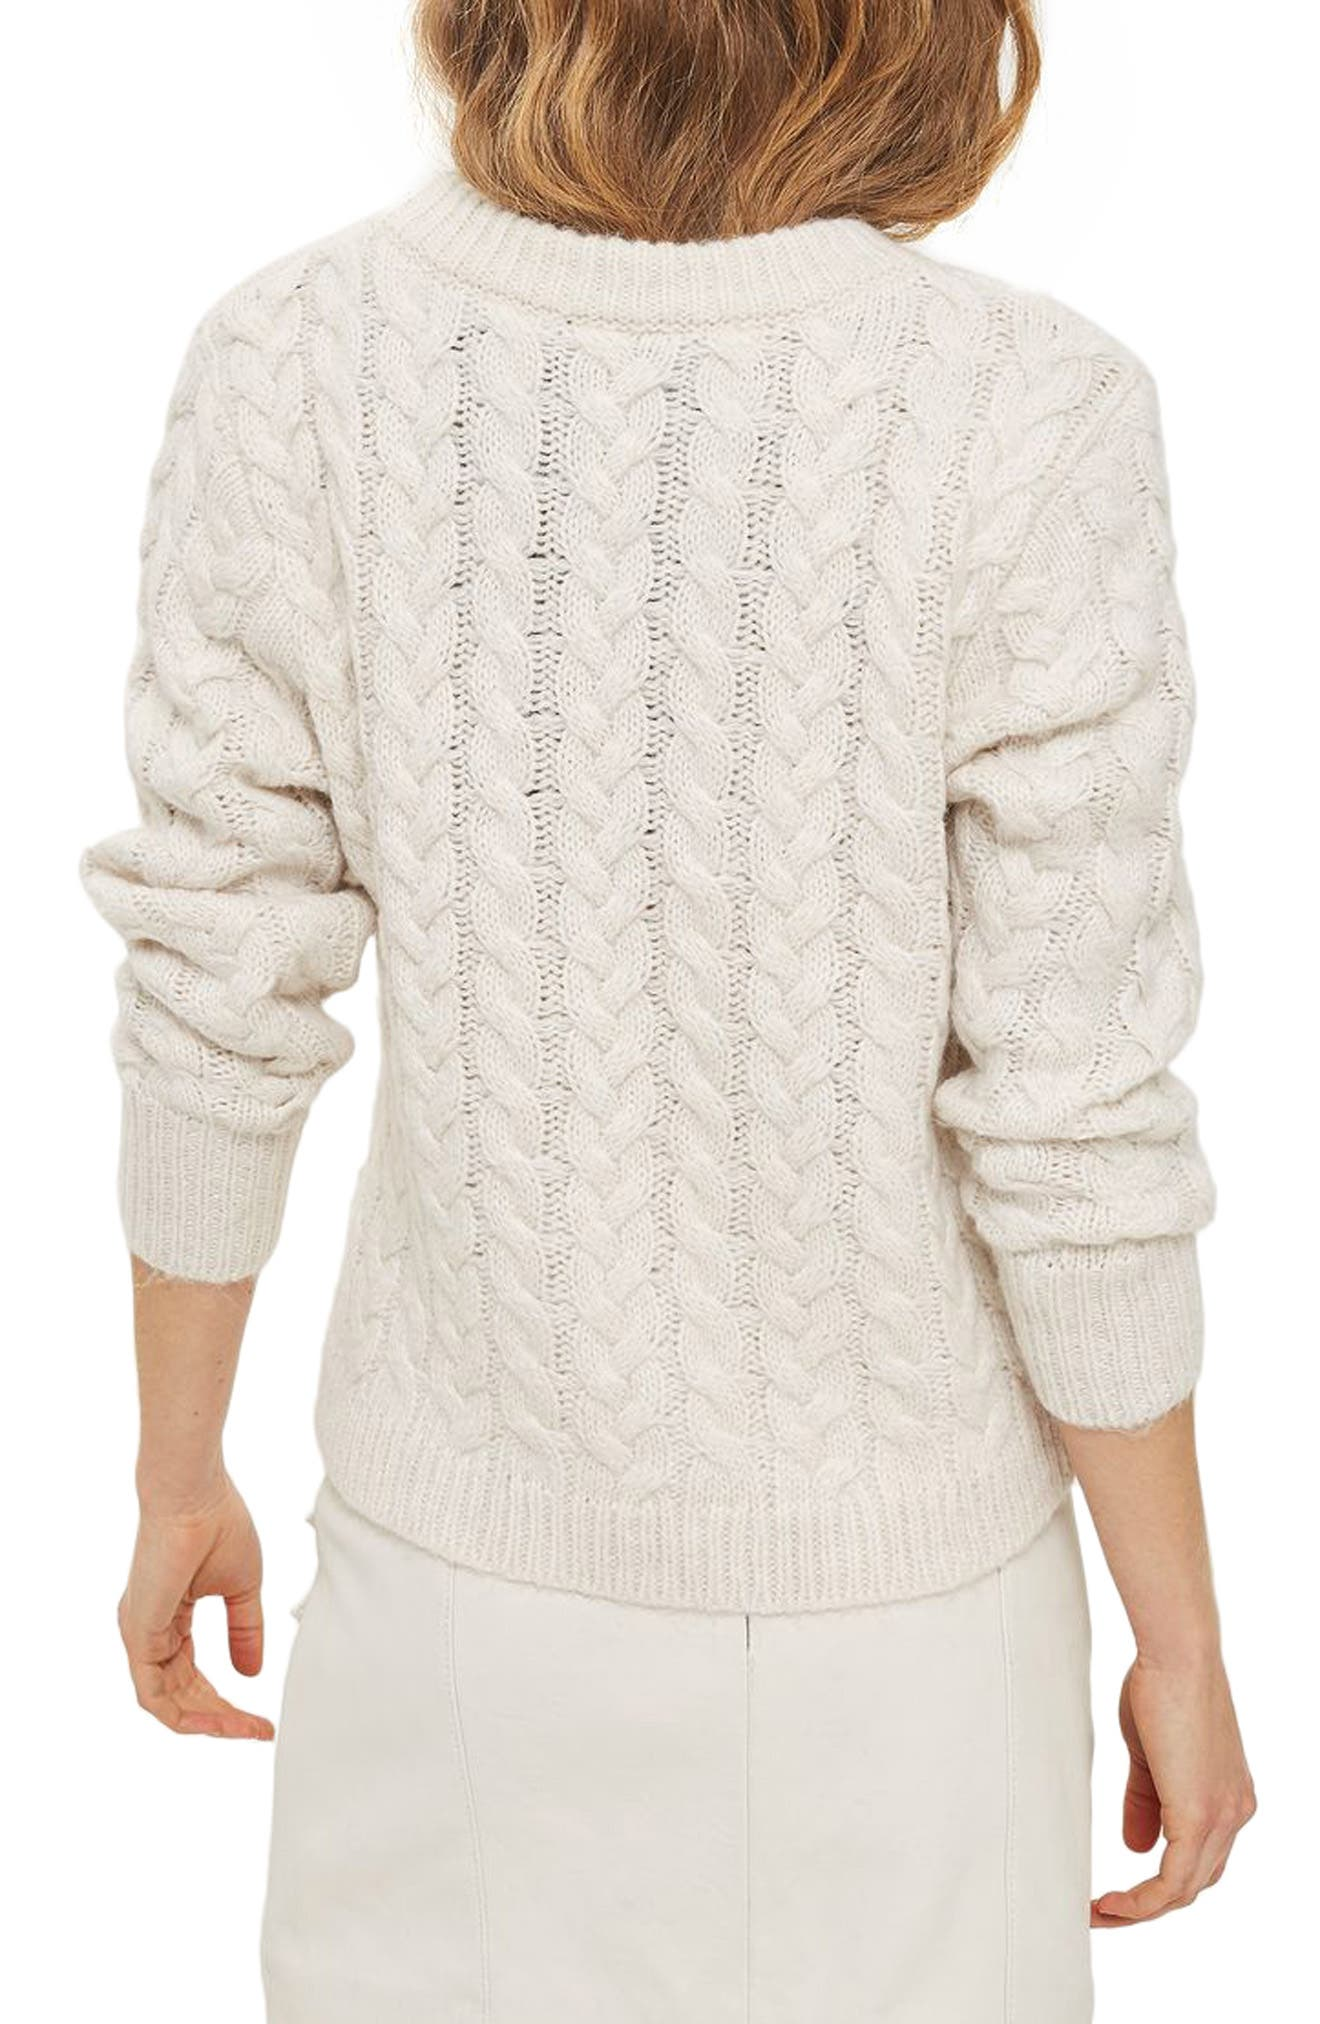 Asymmetrical Cable Knit Sweater,                             Alternate thumbnail 2, color,                             251